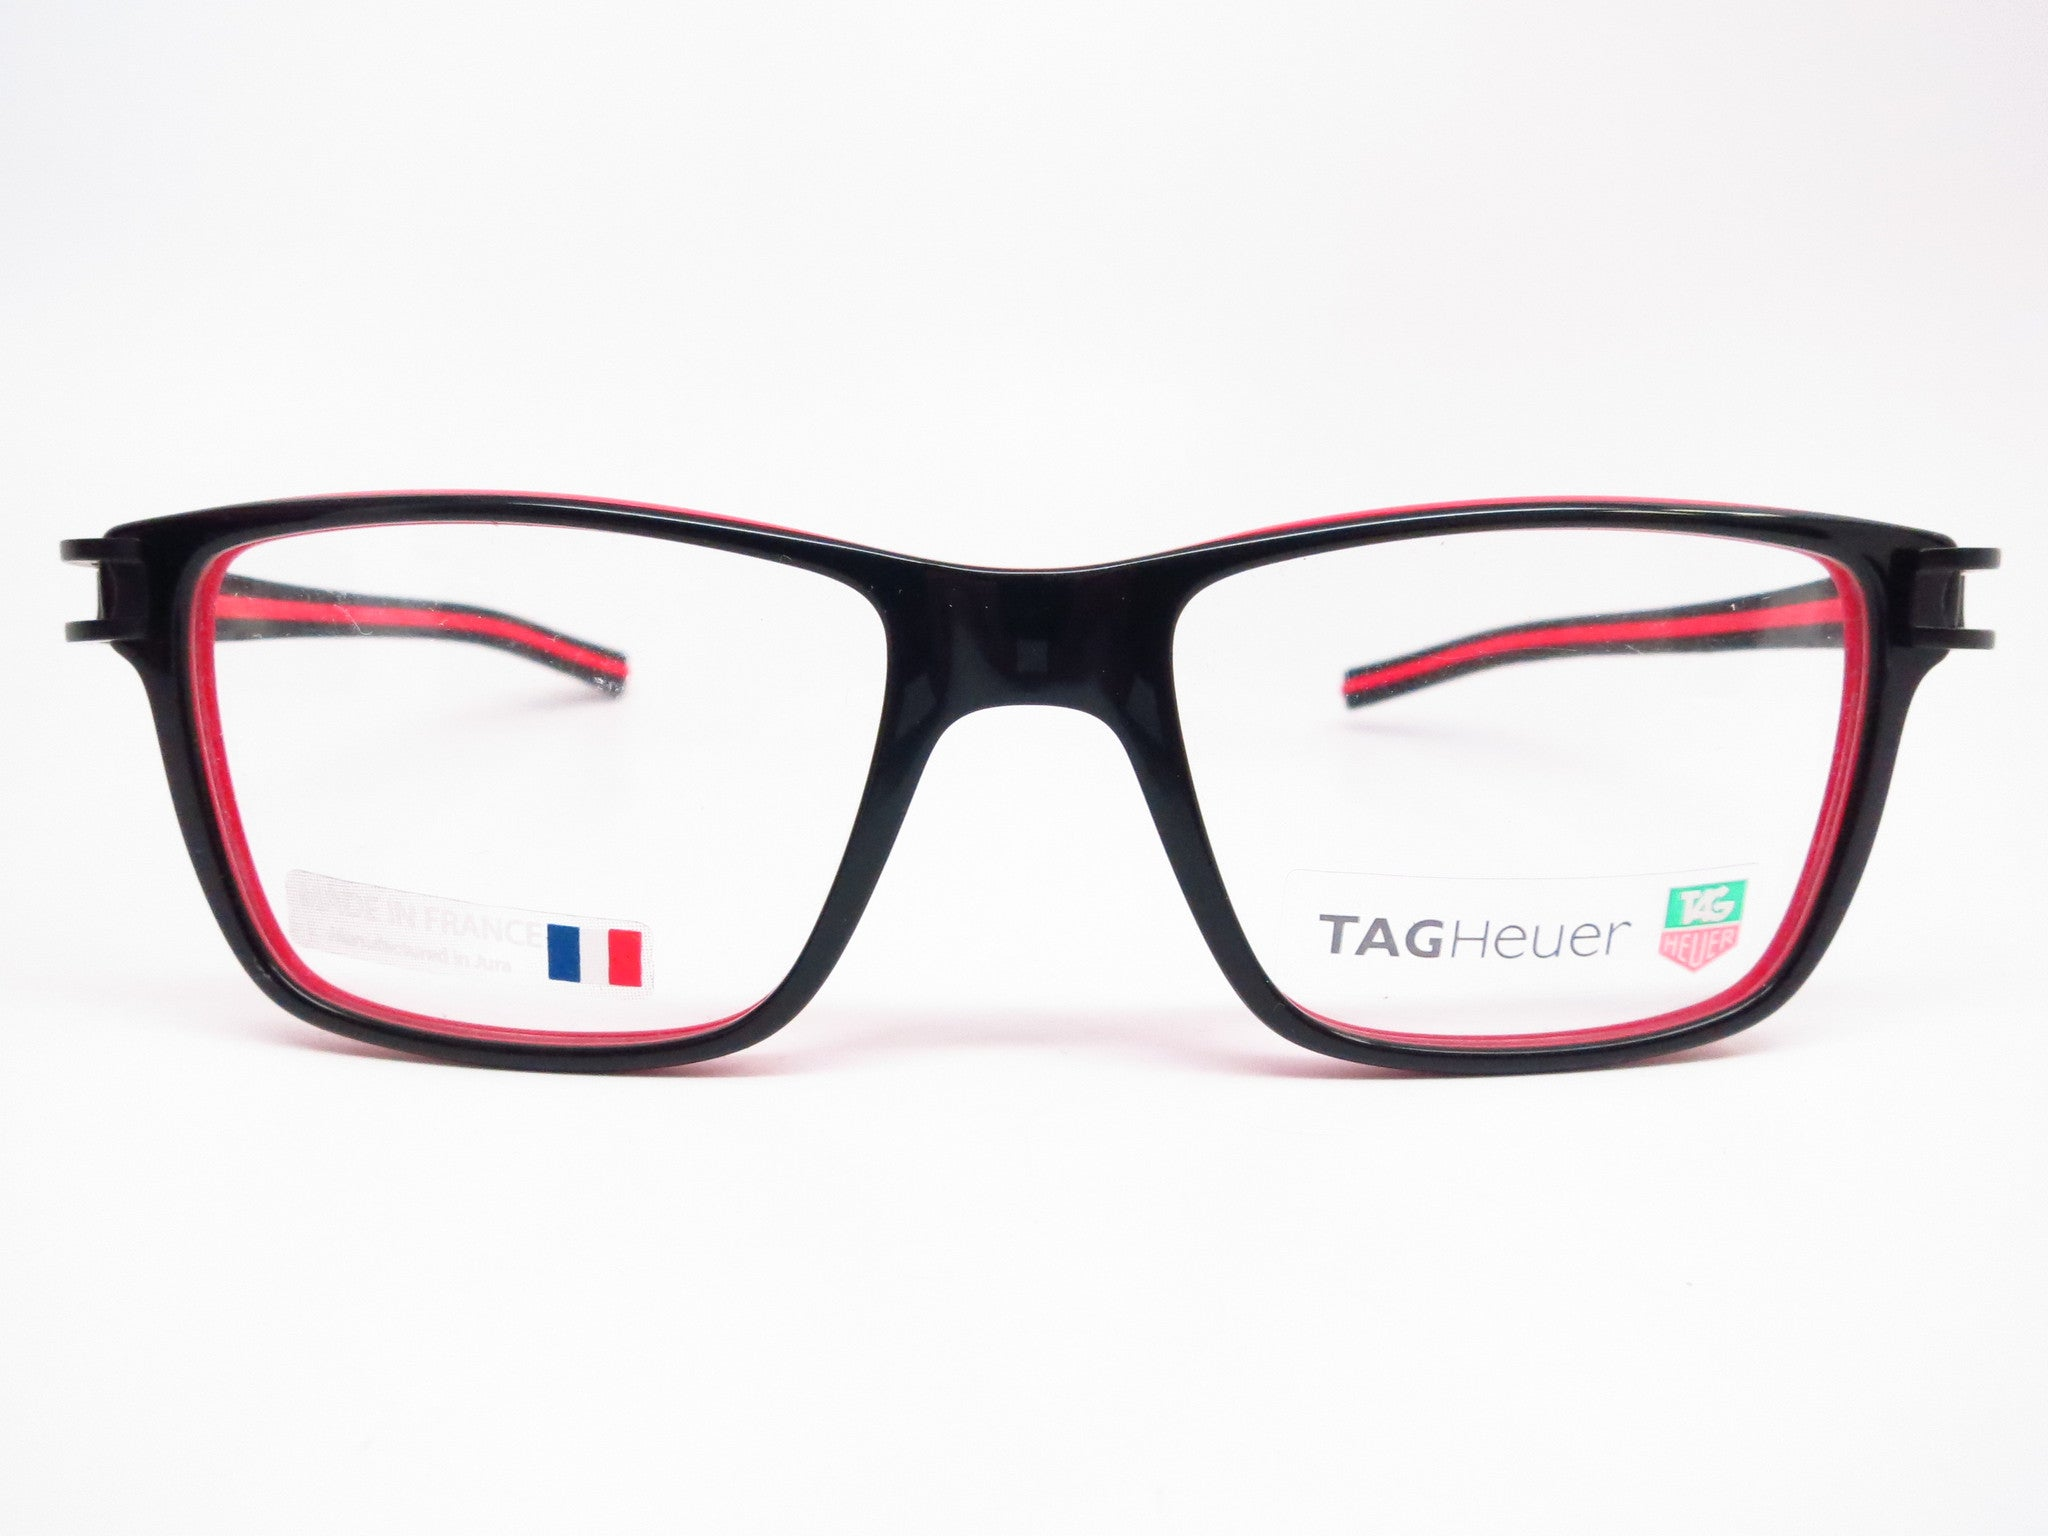 e43447d3368 ... Tag Heuer TH 7601 001 Black   Red Track-S Eyeglasses - Eye Heart Shades  ...